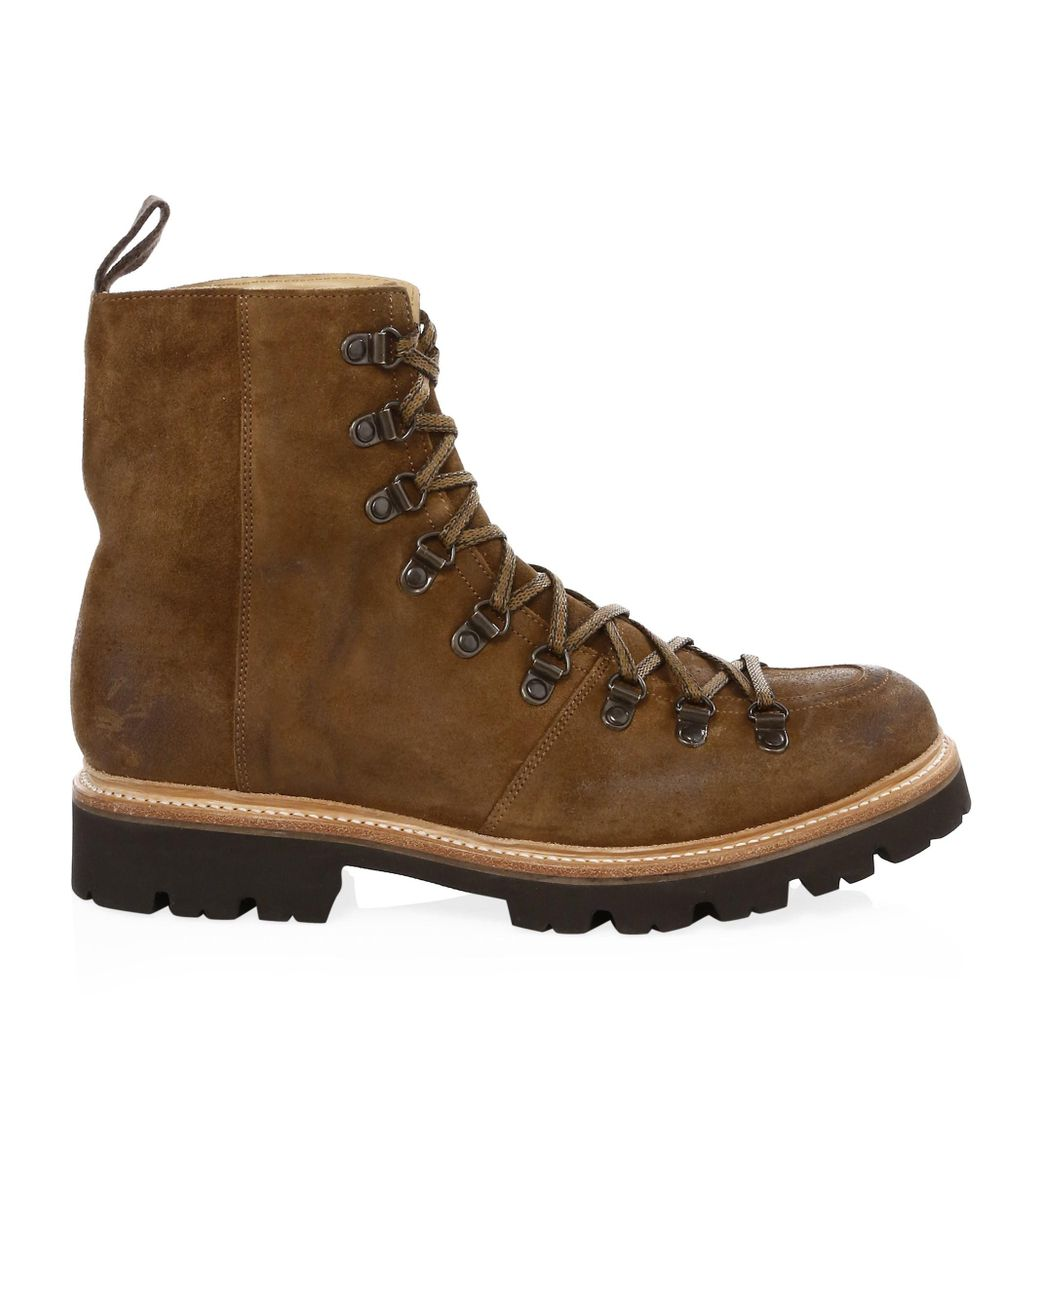 22edccdb959 Men's Suede Hiking Boots - Brown